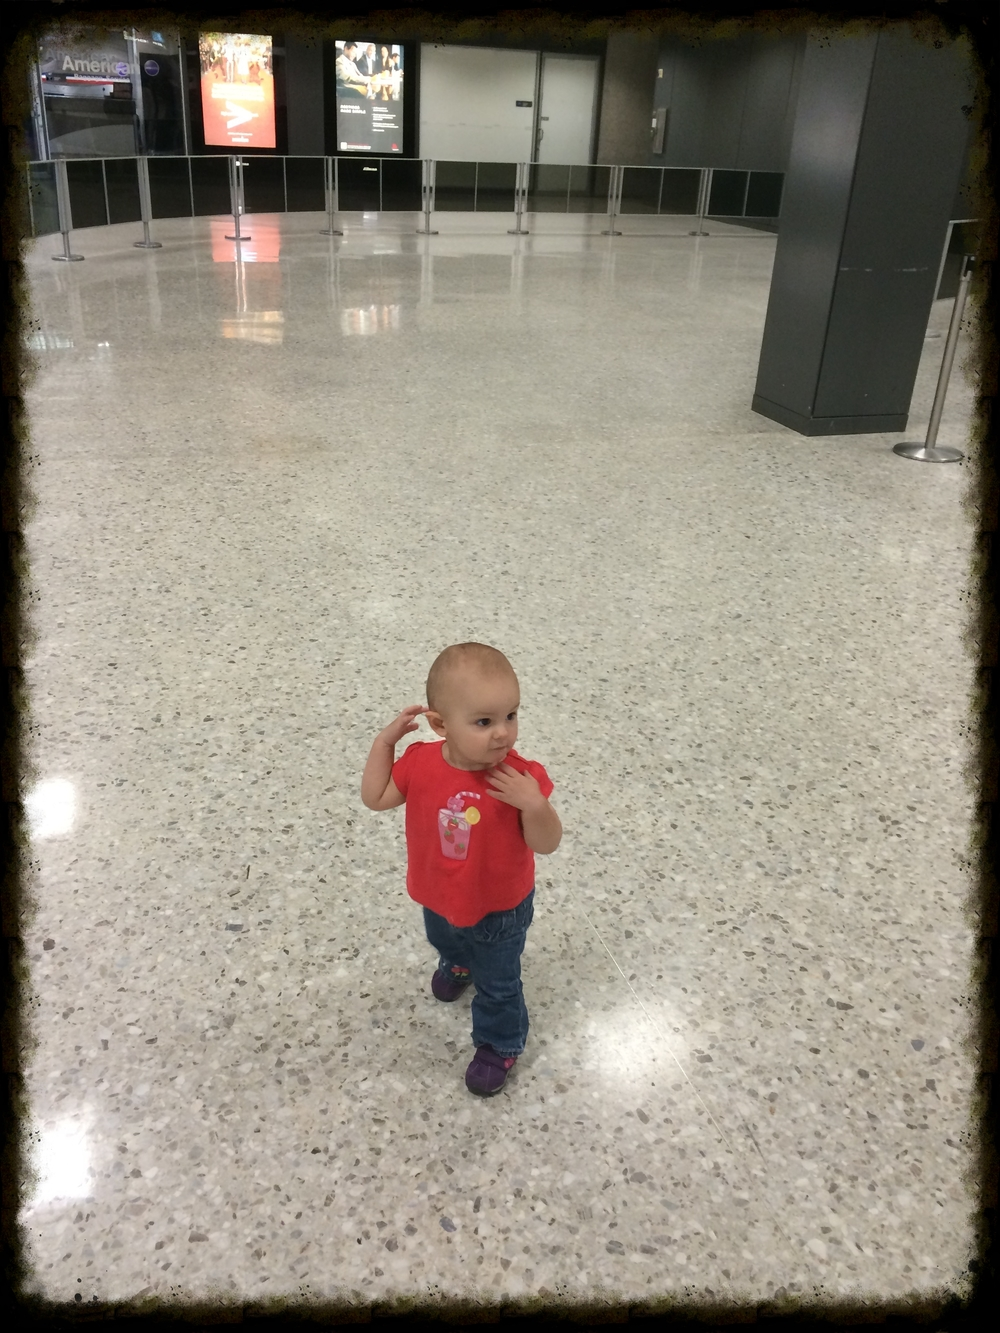 Reunion! A tiny Annabelle deplanes, somewhat stunned, in the gaping Dulles Airport arrivals area after a 12-hour flight from Seoul and half of her first year apart from her Dad. She looks pretty good, considering.